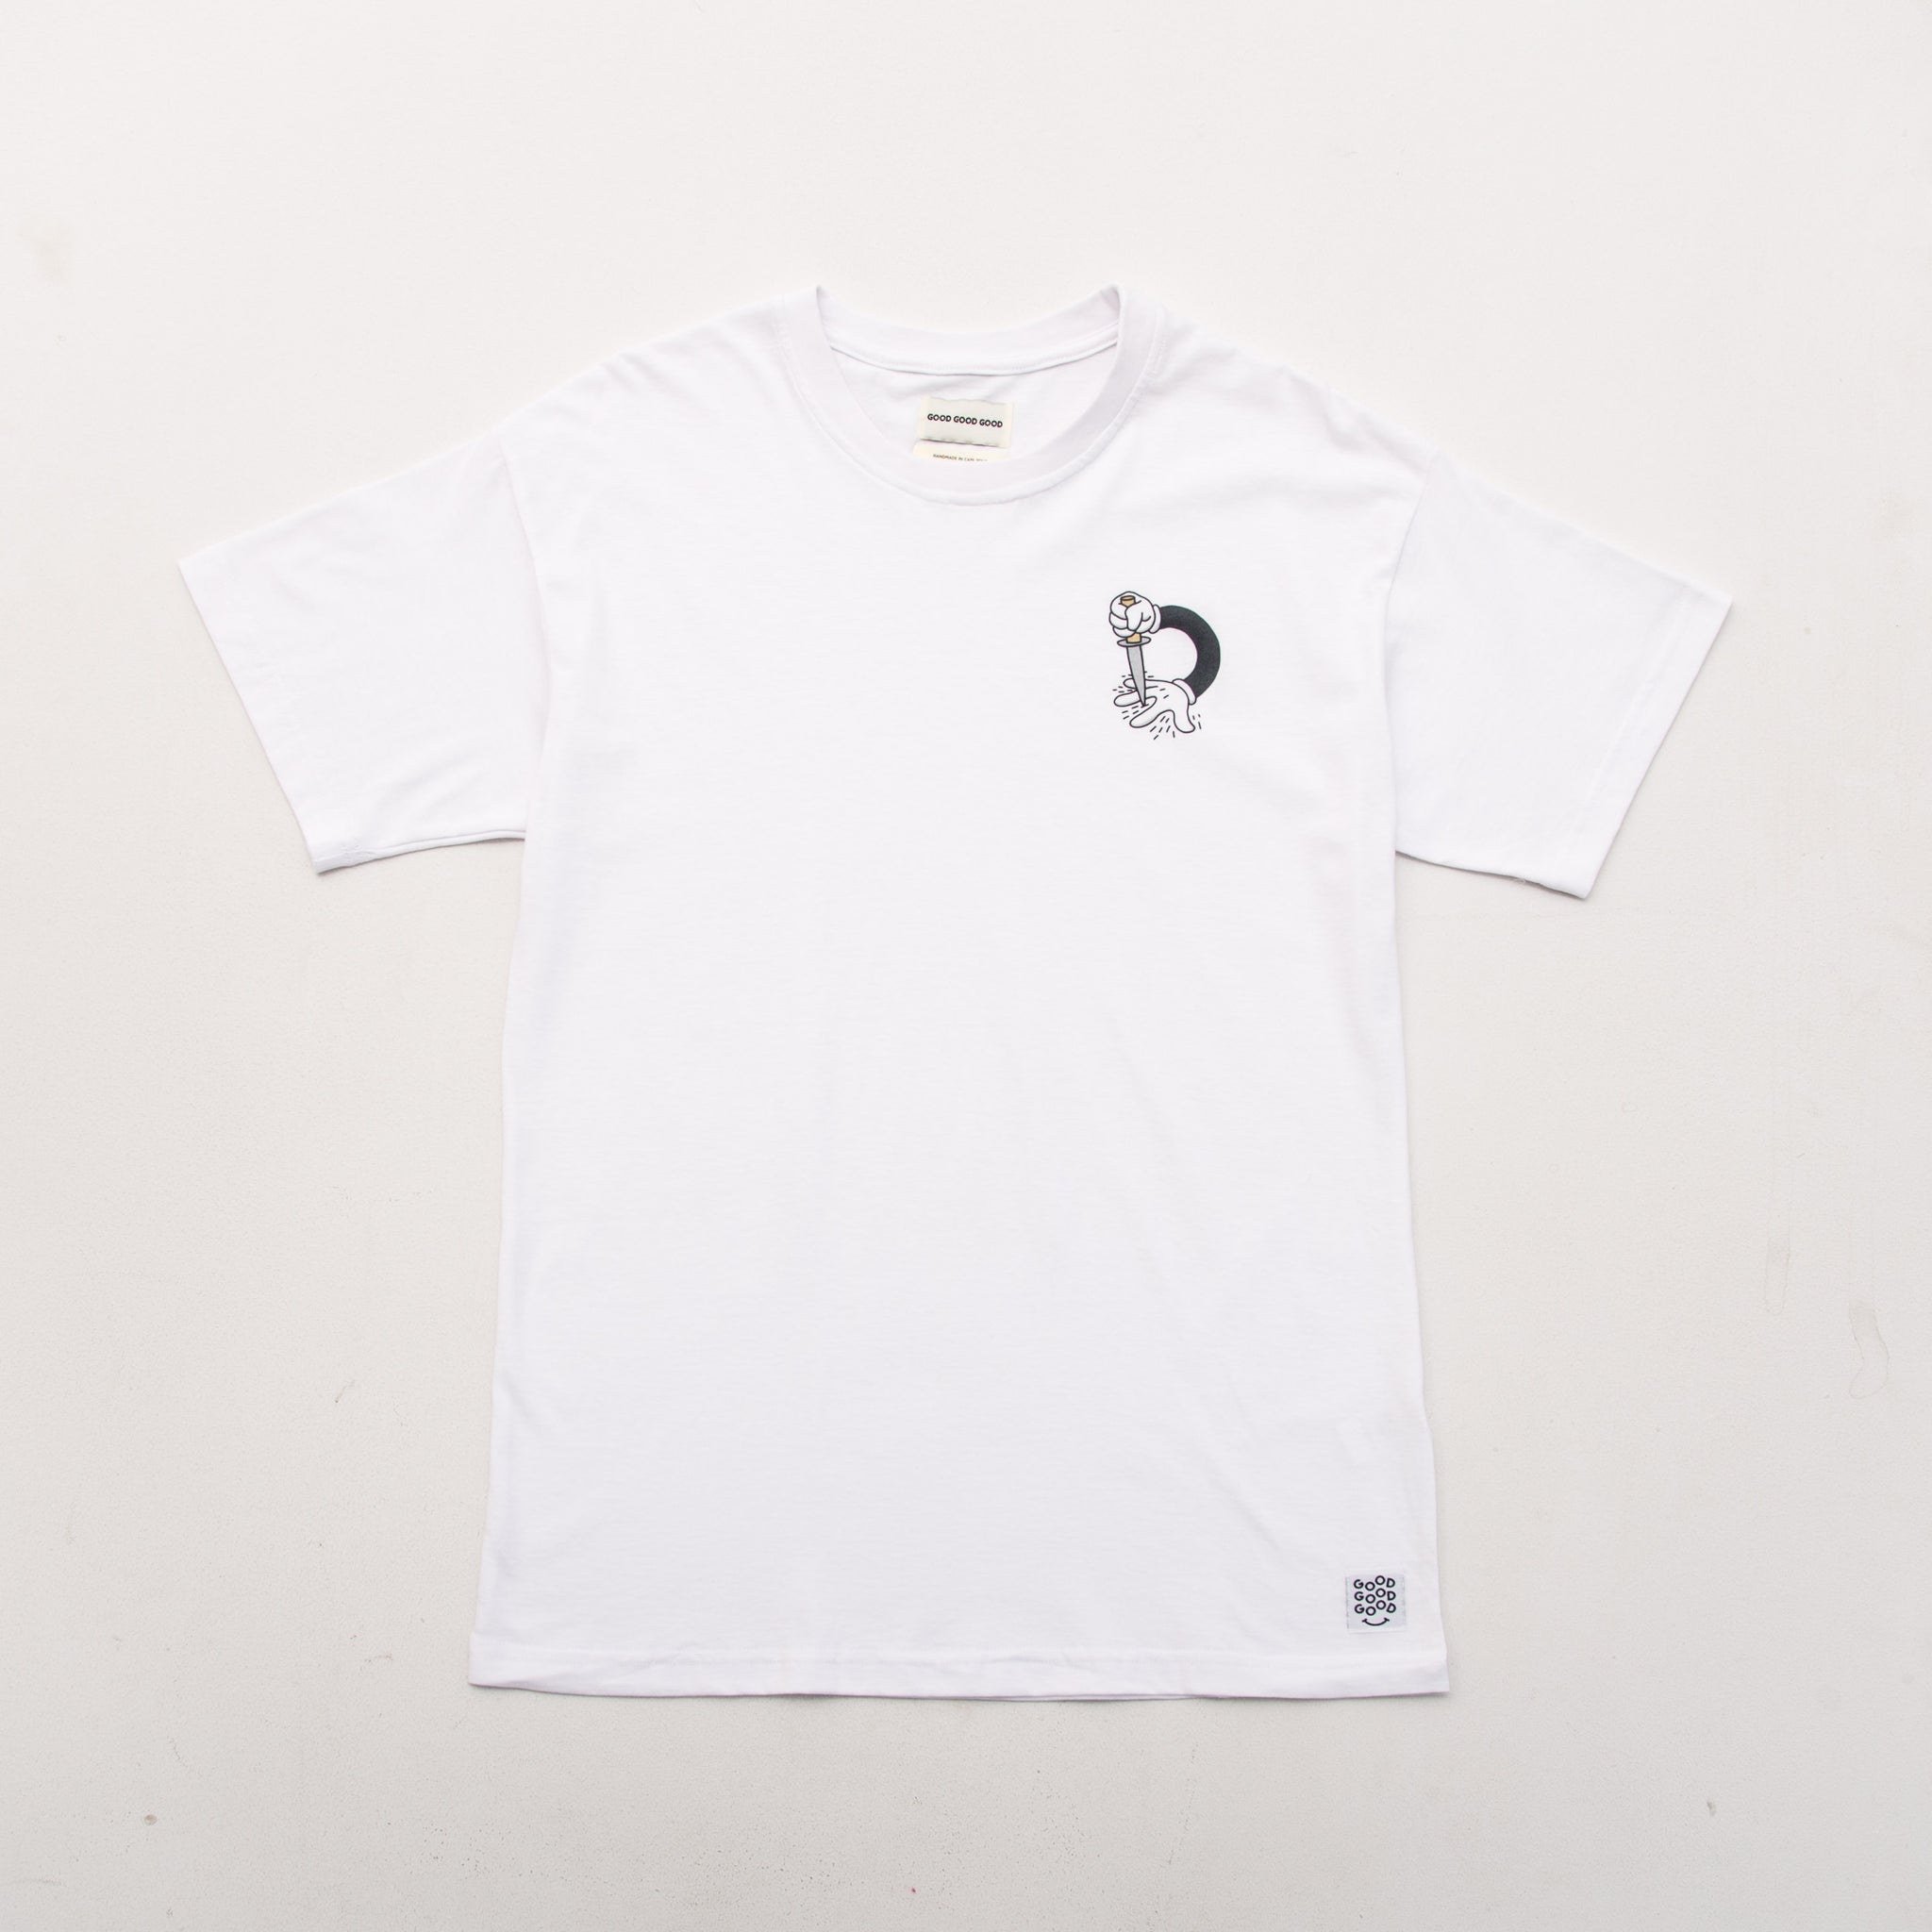 Knife Hands Tee - White - A Store